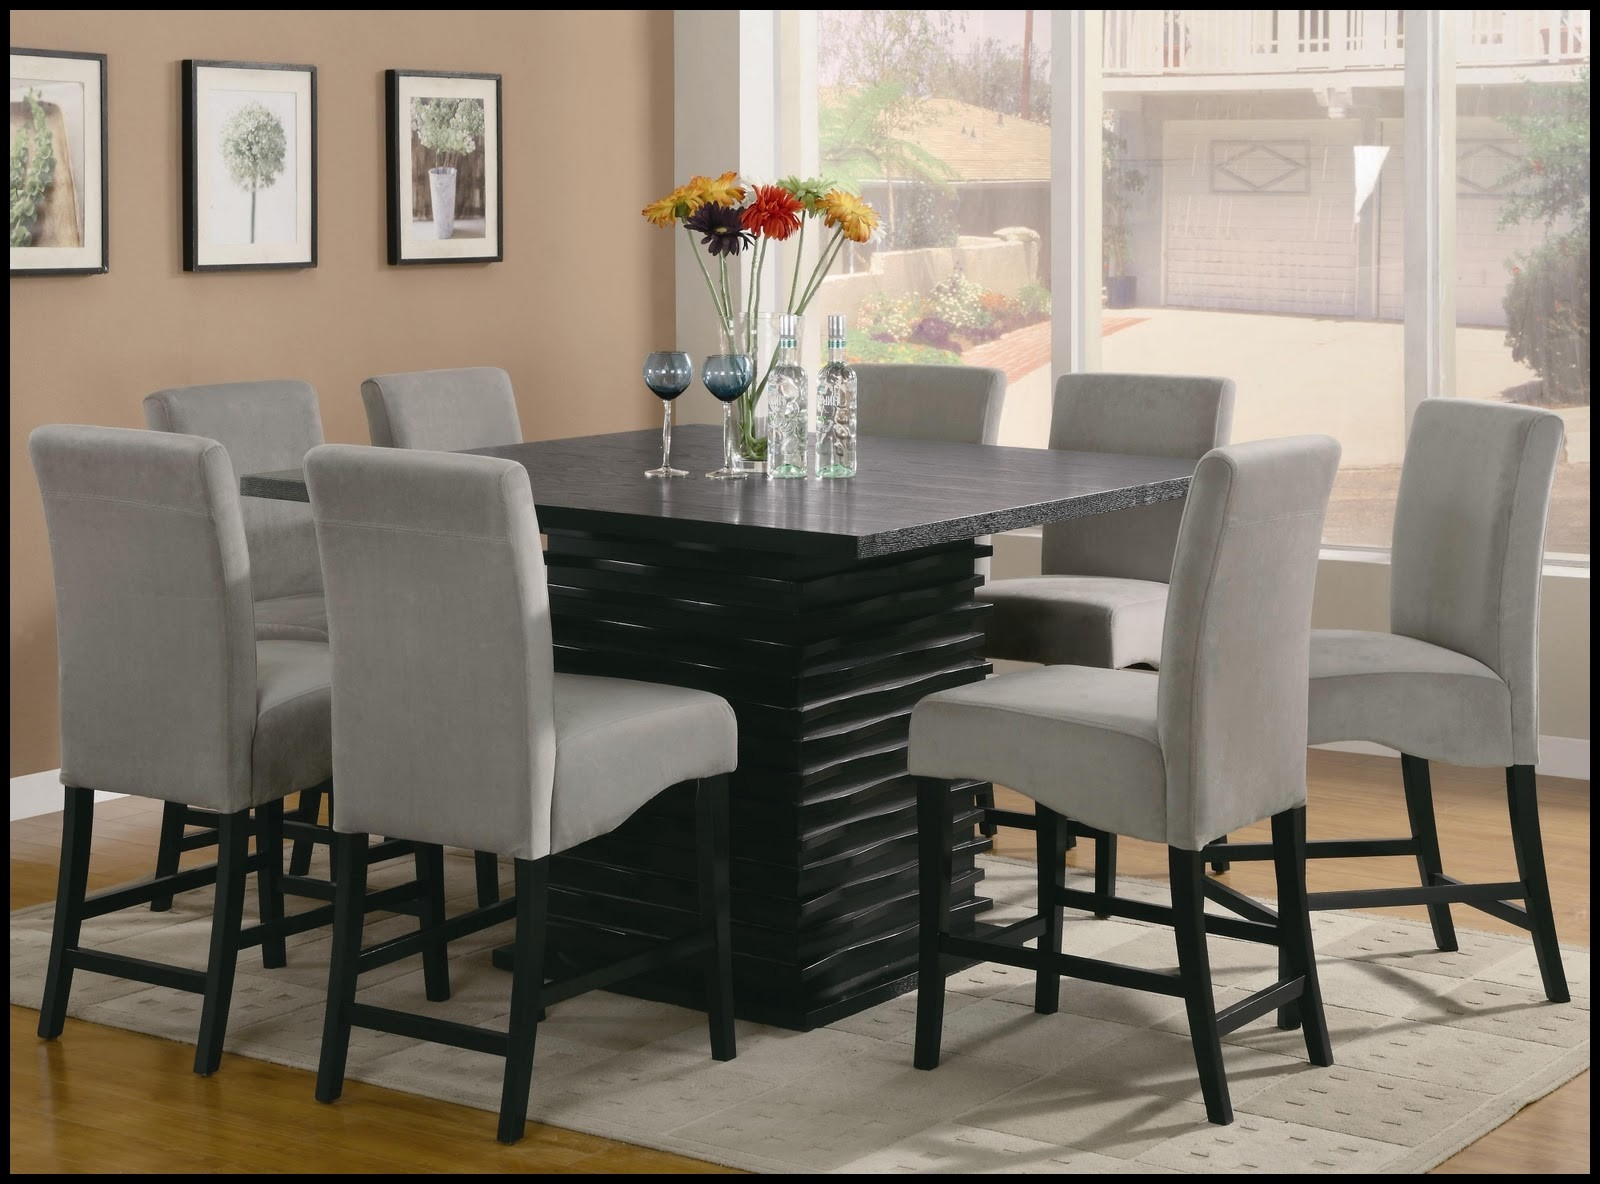 Dining Room Charming Value City Furniture Dining Sets H10 For Your